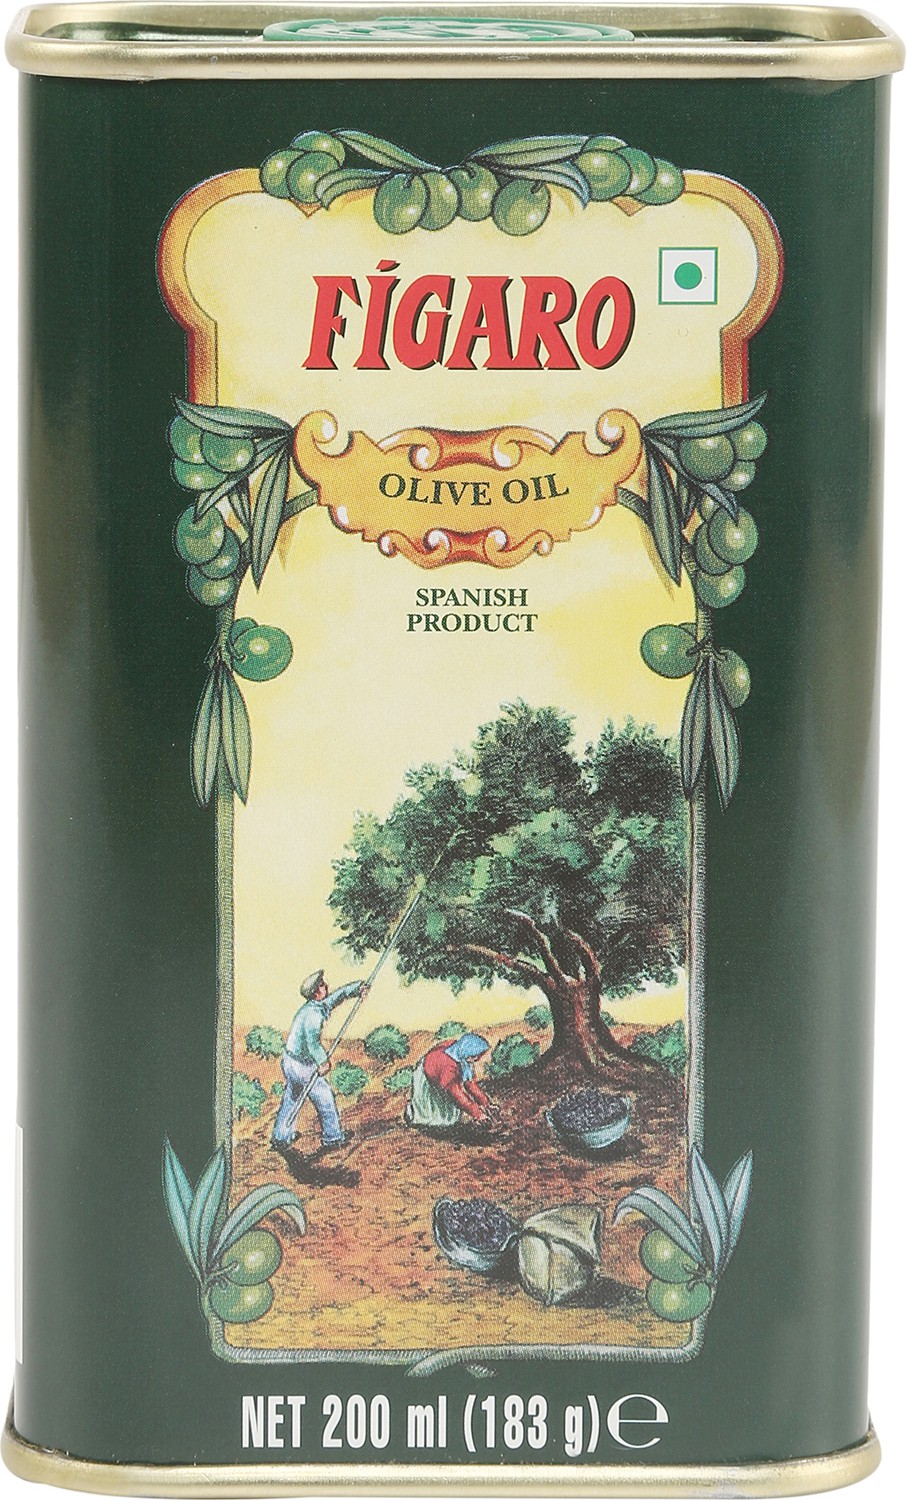 Figaro Pure Olive Oil 200 ml